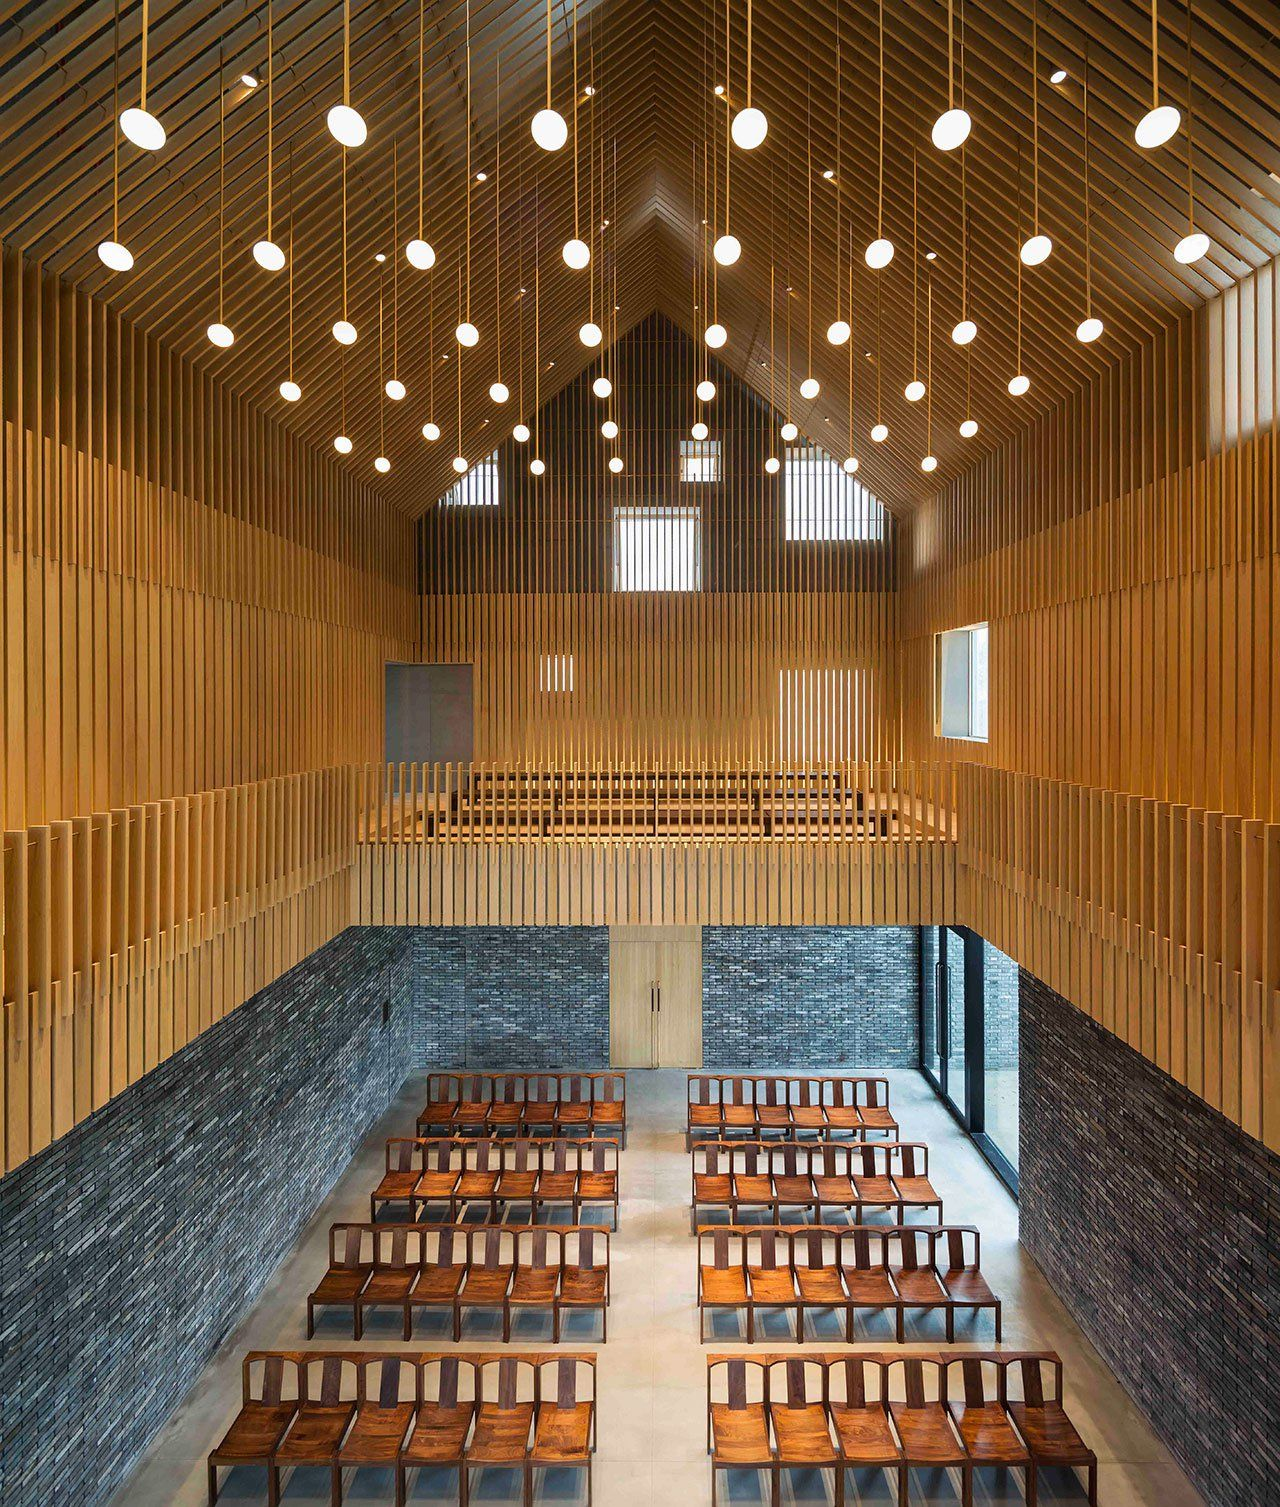 Blanc Beacon The Suzhou Chapel By Neri Hu Suzhou And Architecture # Muebles Fiotti Cali